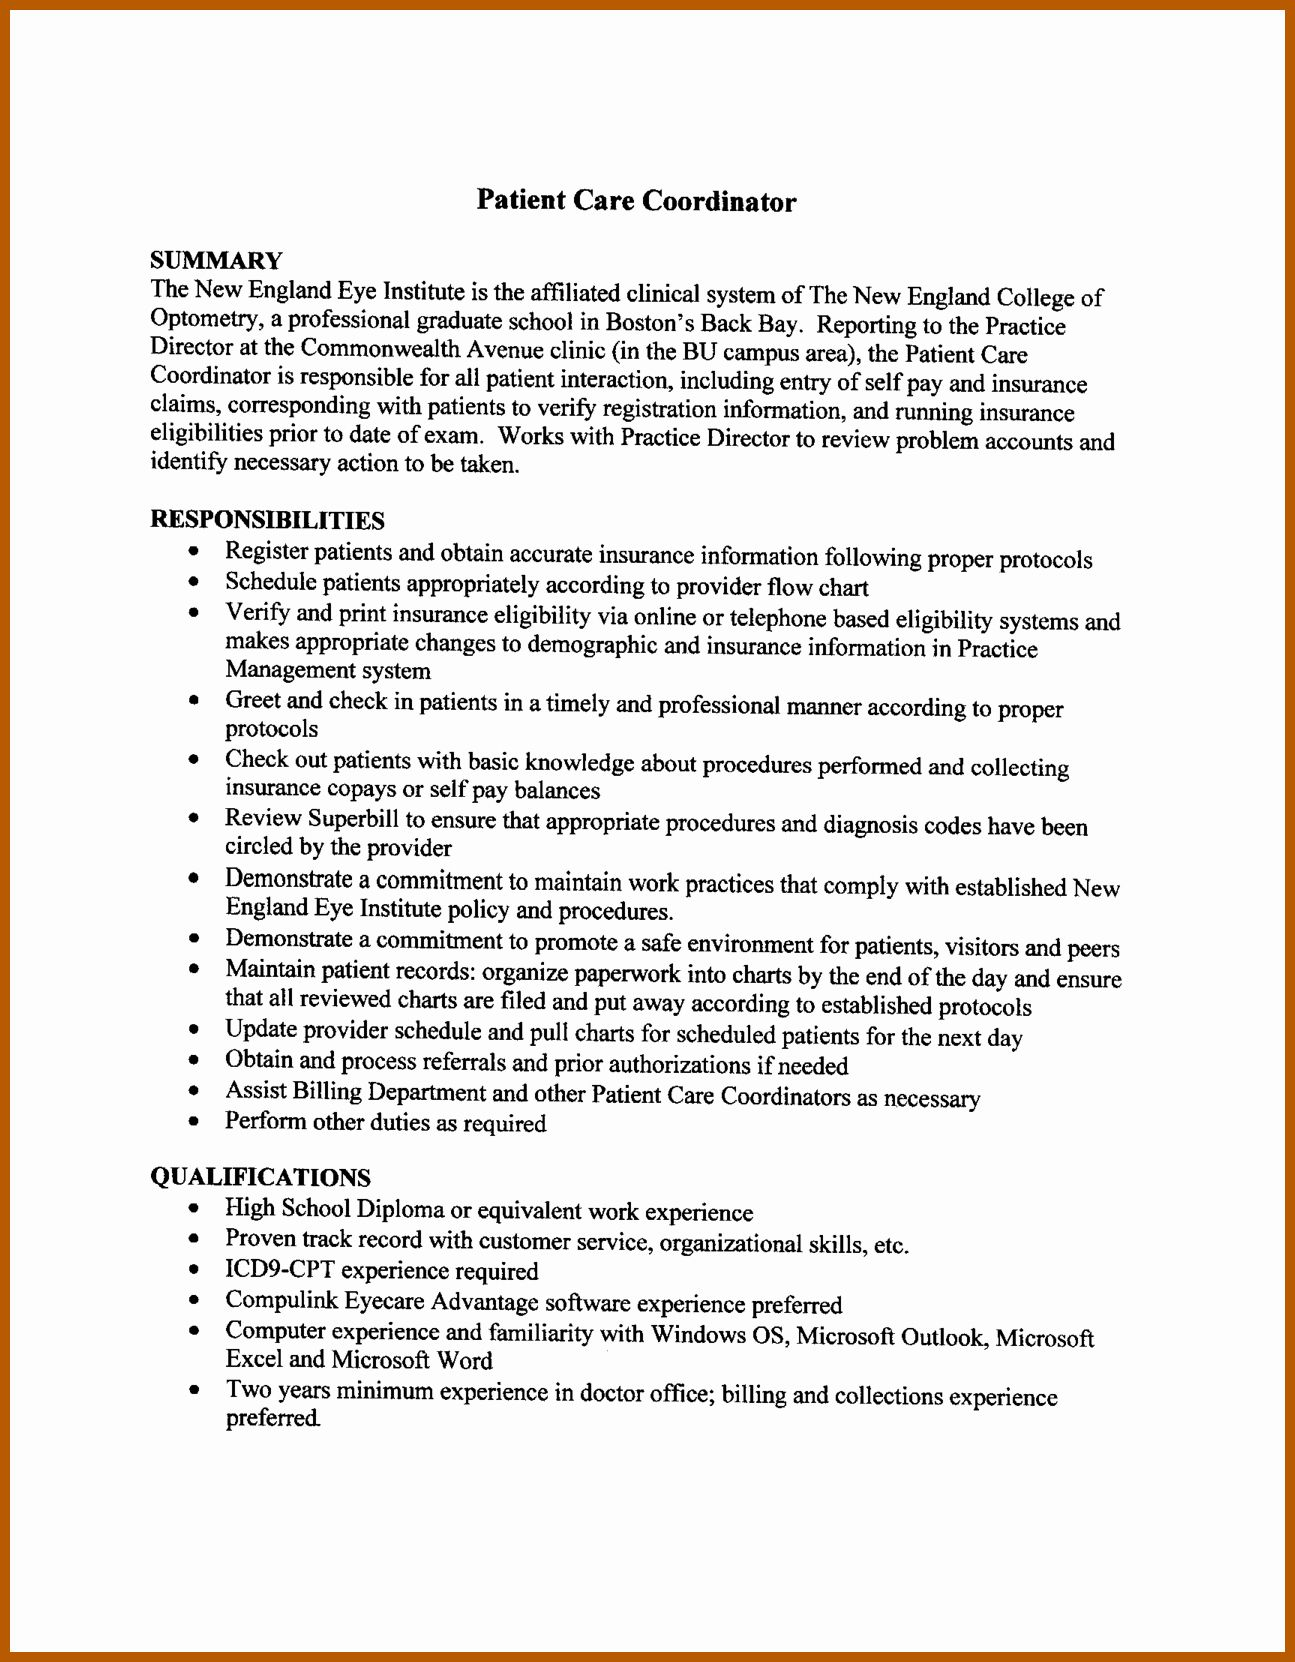 Patient Care Coordinator Job Description Resume Luxury 4 5 Patient Service Coordinator Resume Patient Care Coordinator Coordinator Job Patient Care